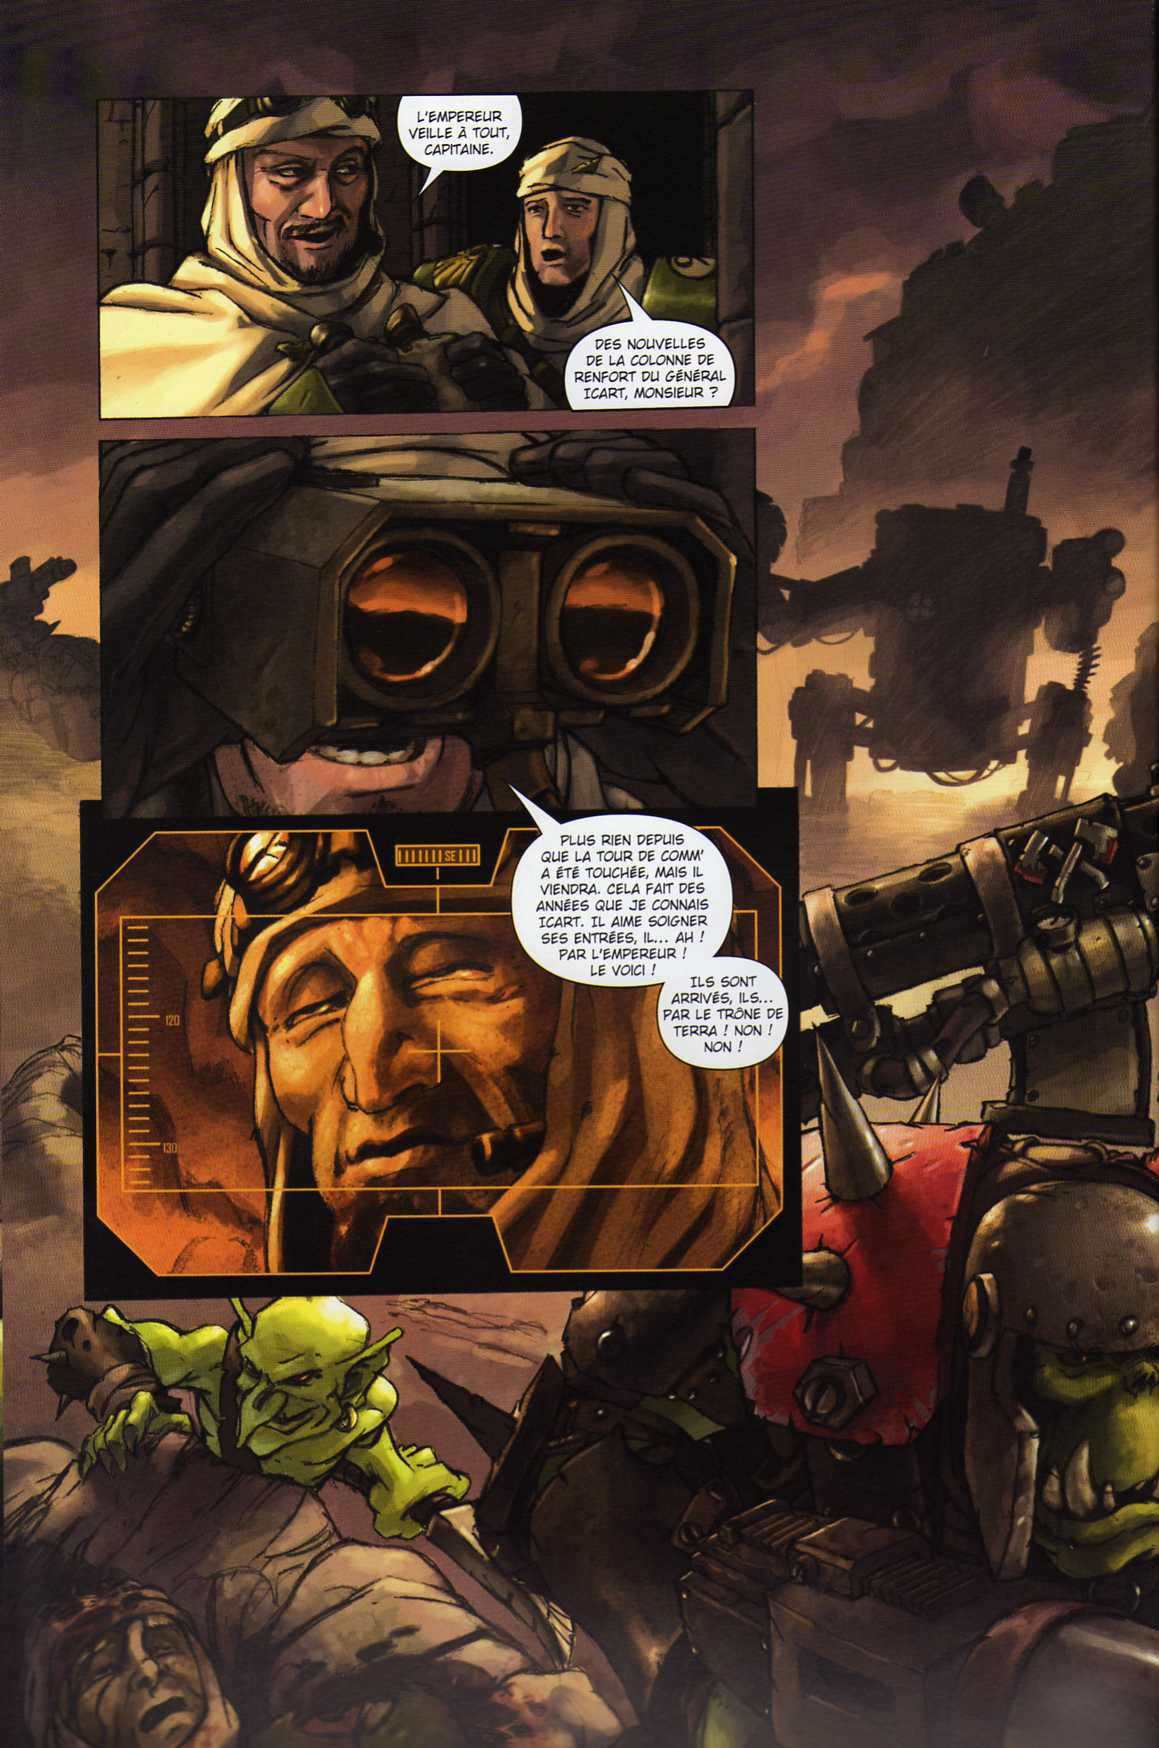 T3 : Tonnerre de sang - Warhammer 40.000 (page 4)